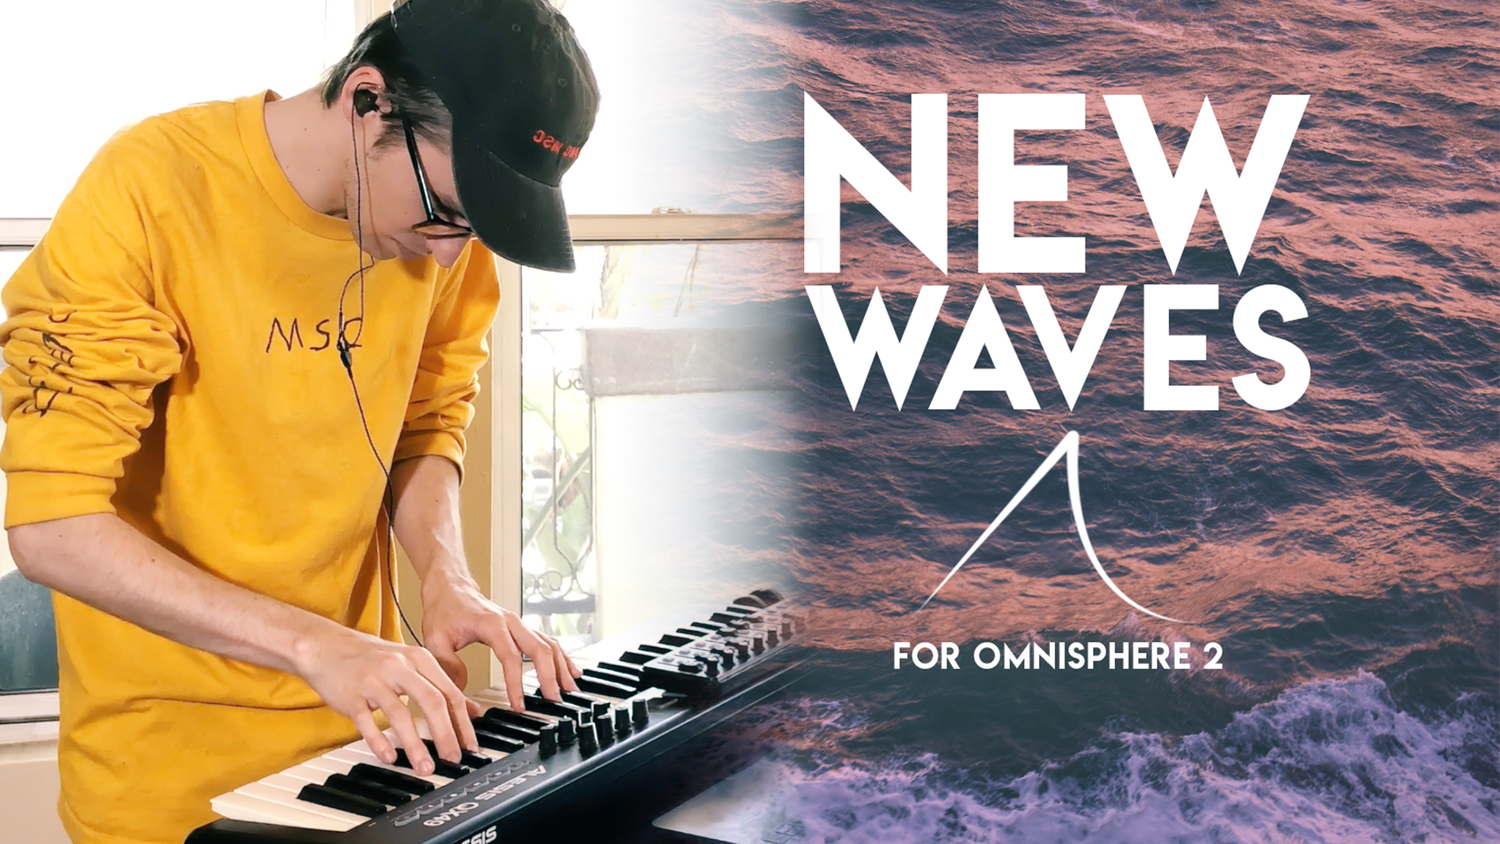 New Waves Vol 1- Omnisphere 2 Worship Patches Is Now